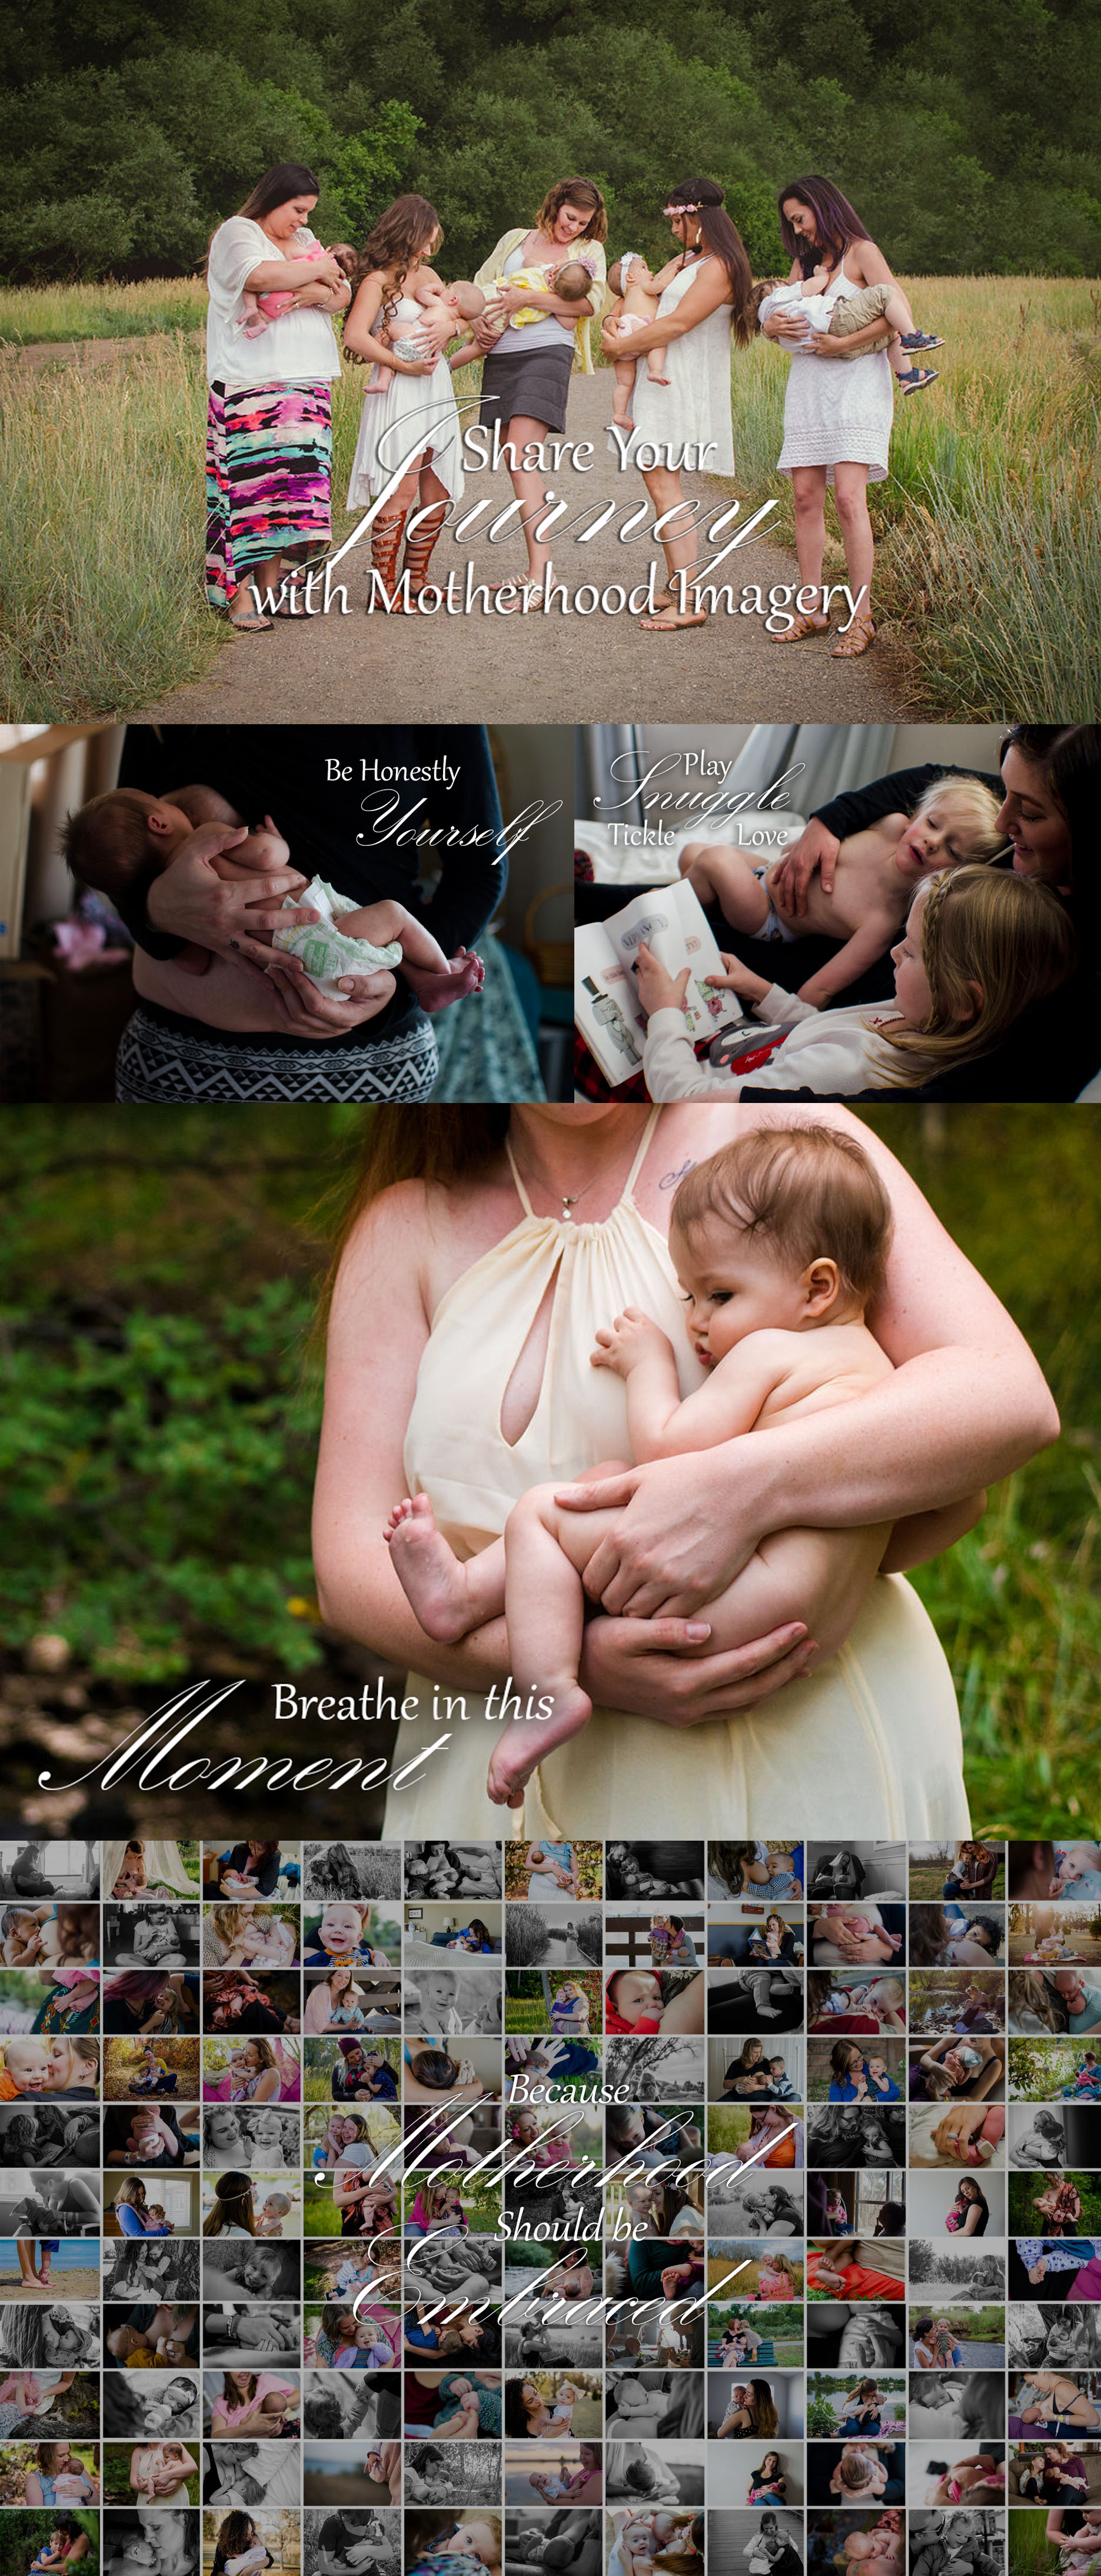 Denver motherhood and breastfeeding photographer collage